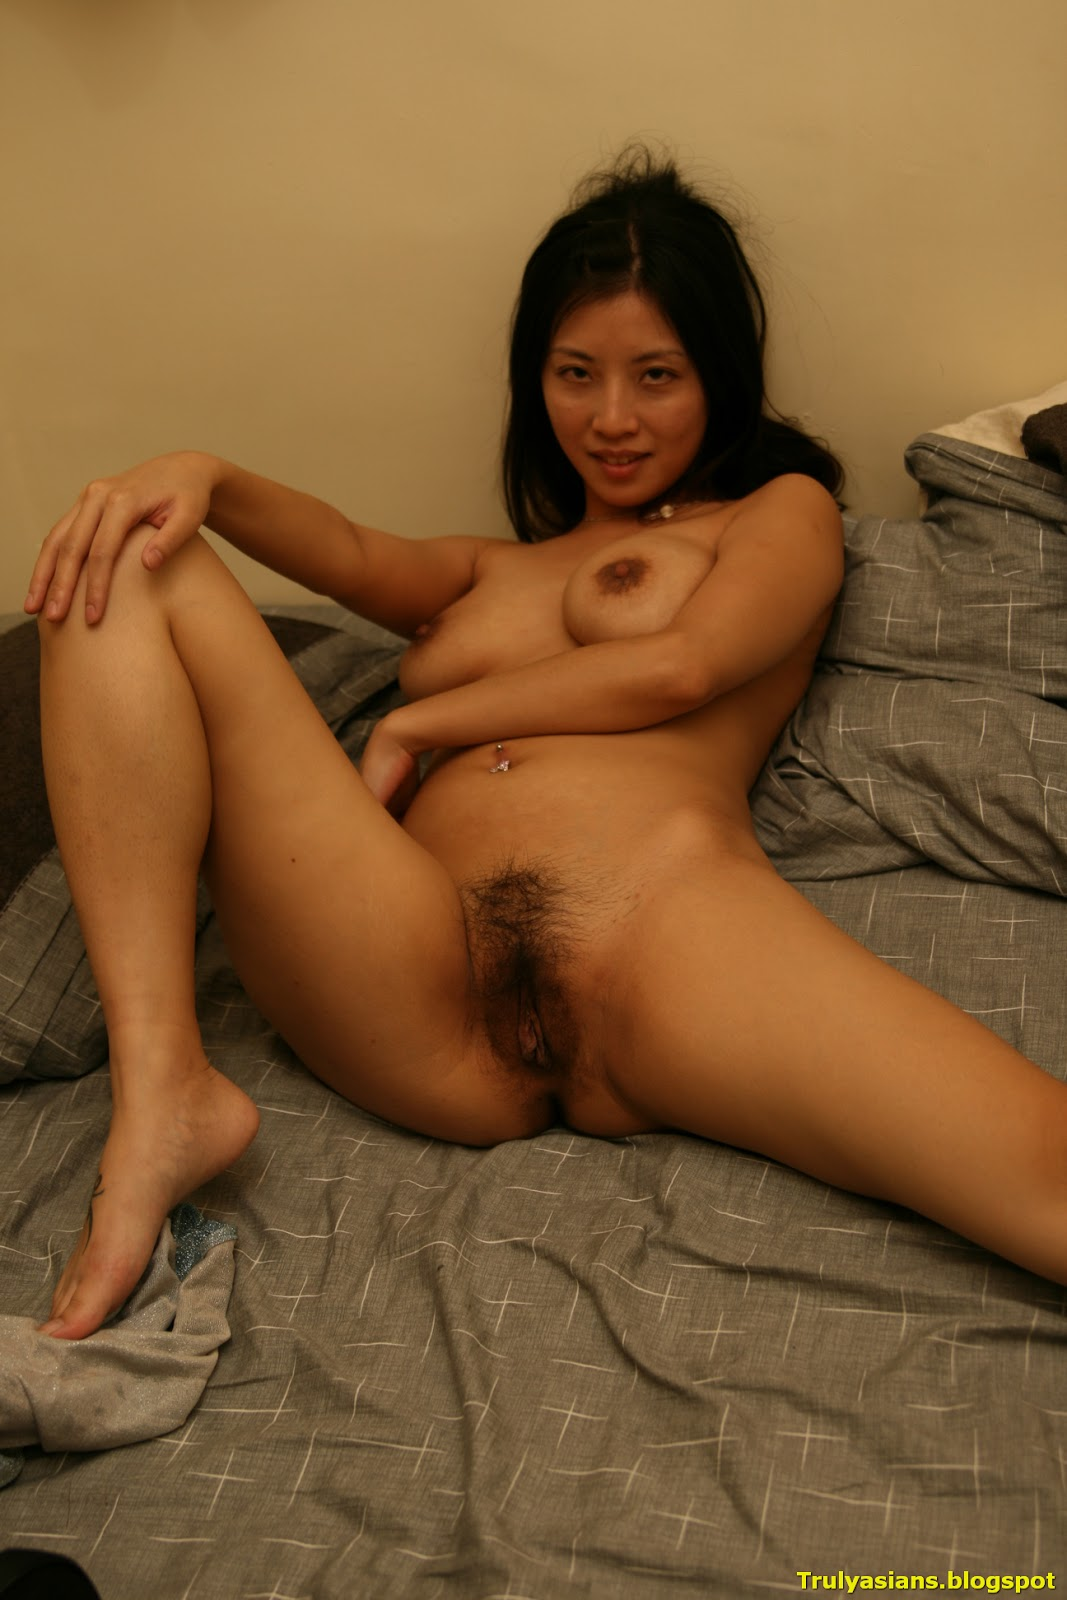 Nude amateur chinese women — photo 4